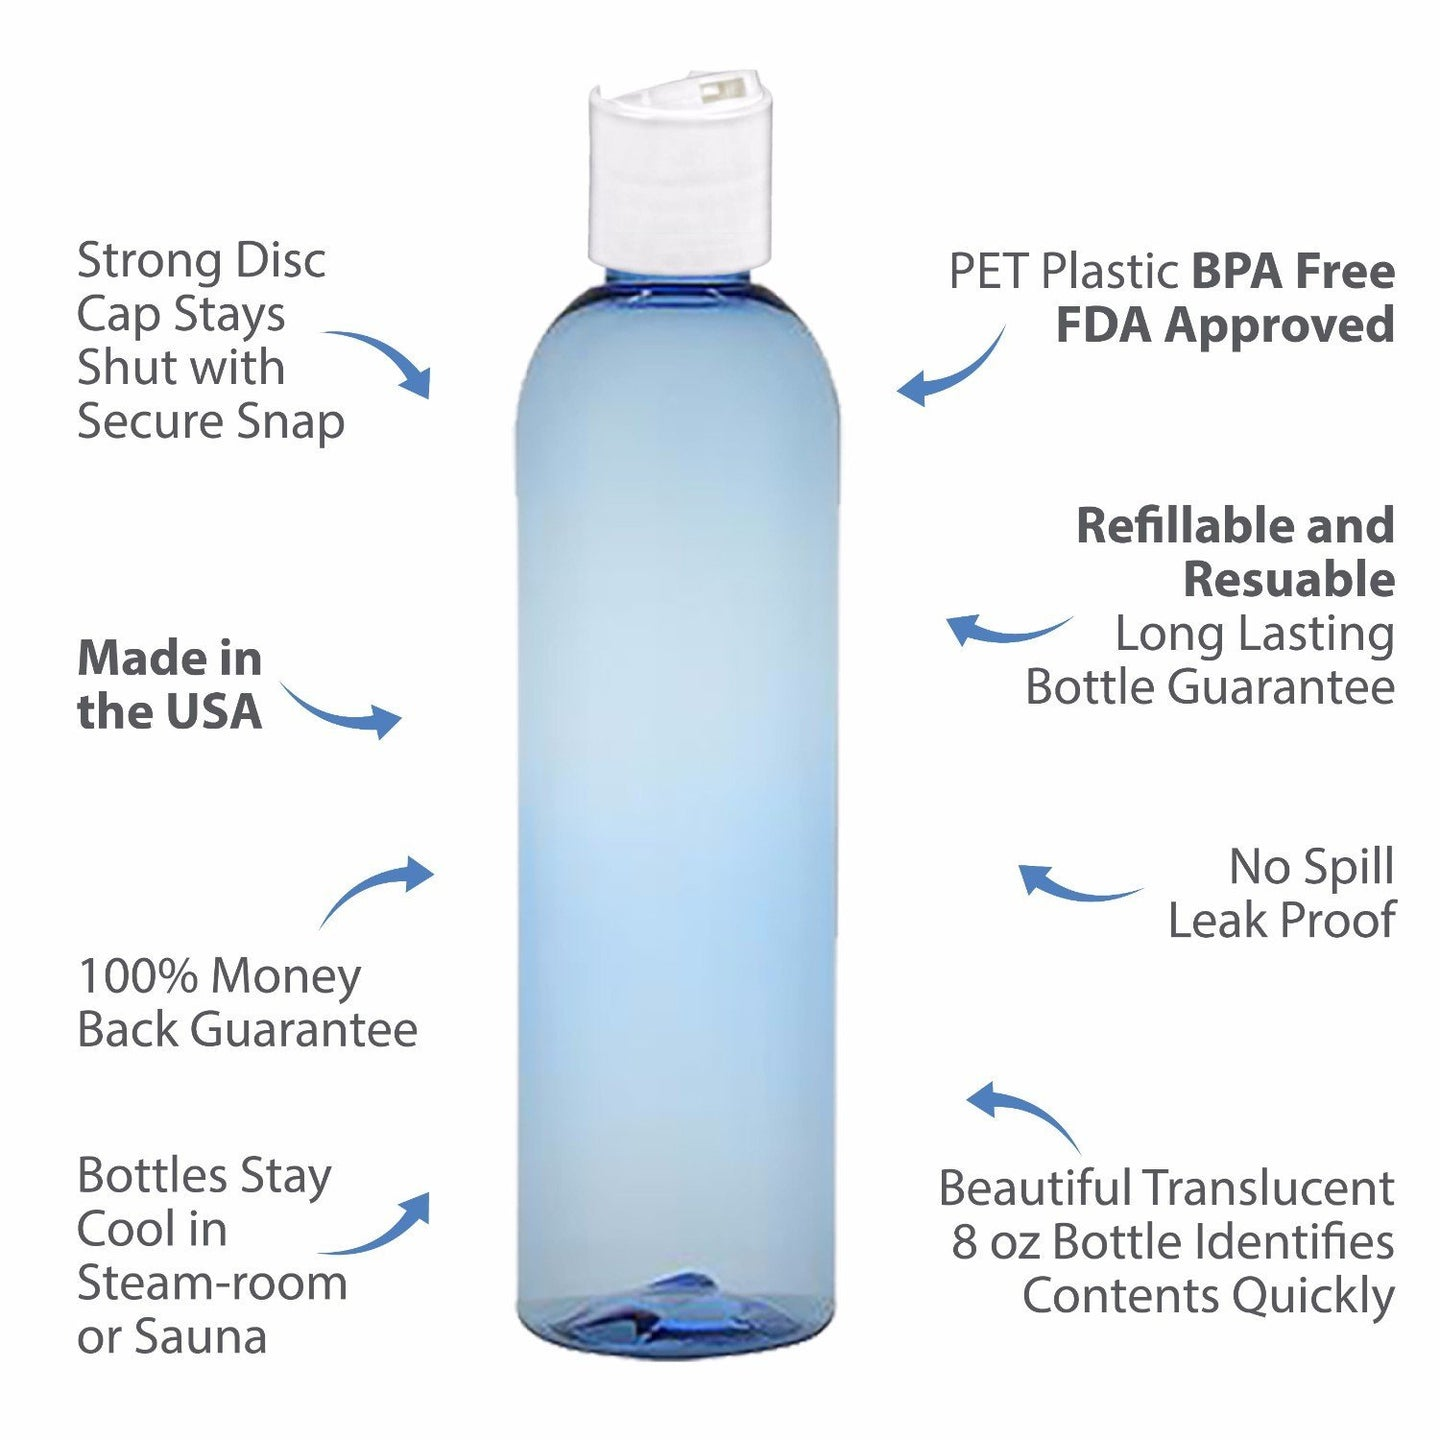 MoYo Natural Labs 8 oz Travel Bottles, Empty Travel Containers with Disc Caps, BPA Free PET Plastic Squeezable Toiletry/Cosmetic Bottles (Pack of 40, Light Blue)